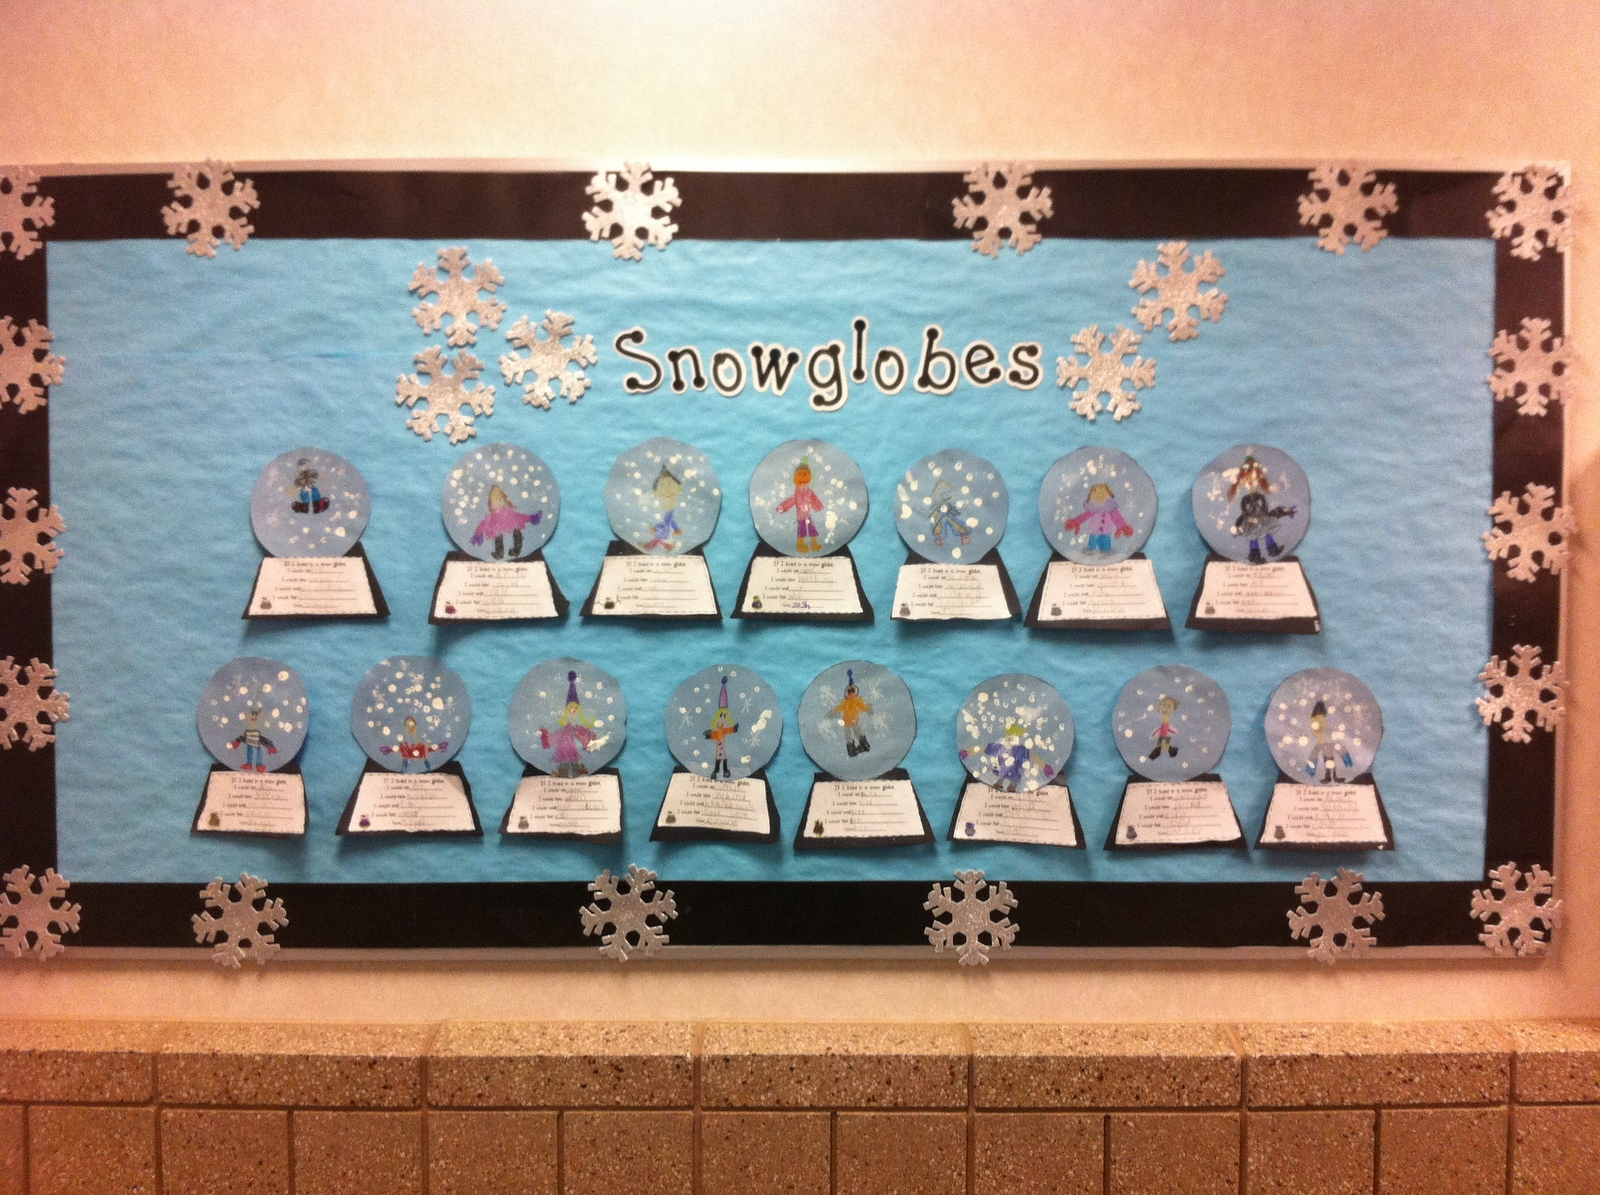 10 Gorgeous Winter Wonderland Bulletin Board Ideas winter wonderland bulletin board ideas postedkatie at 259 pm 2021